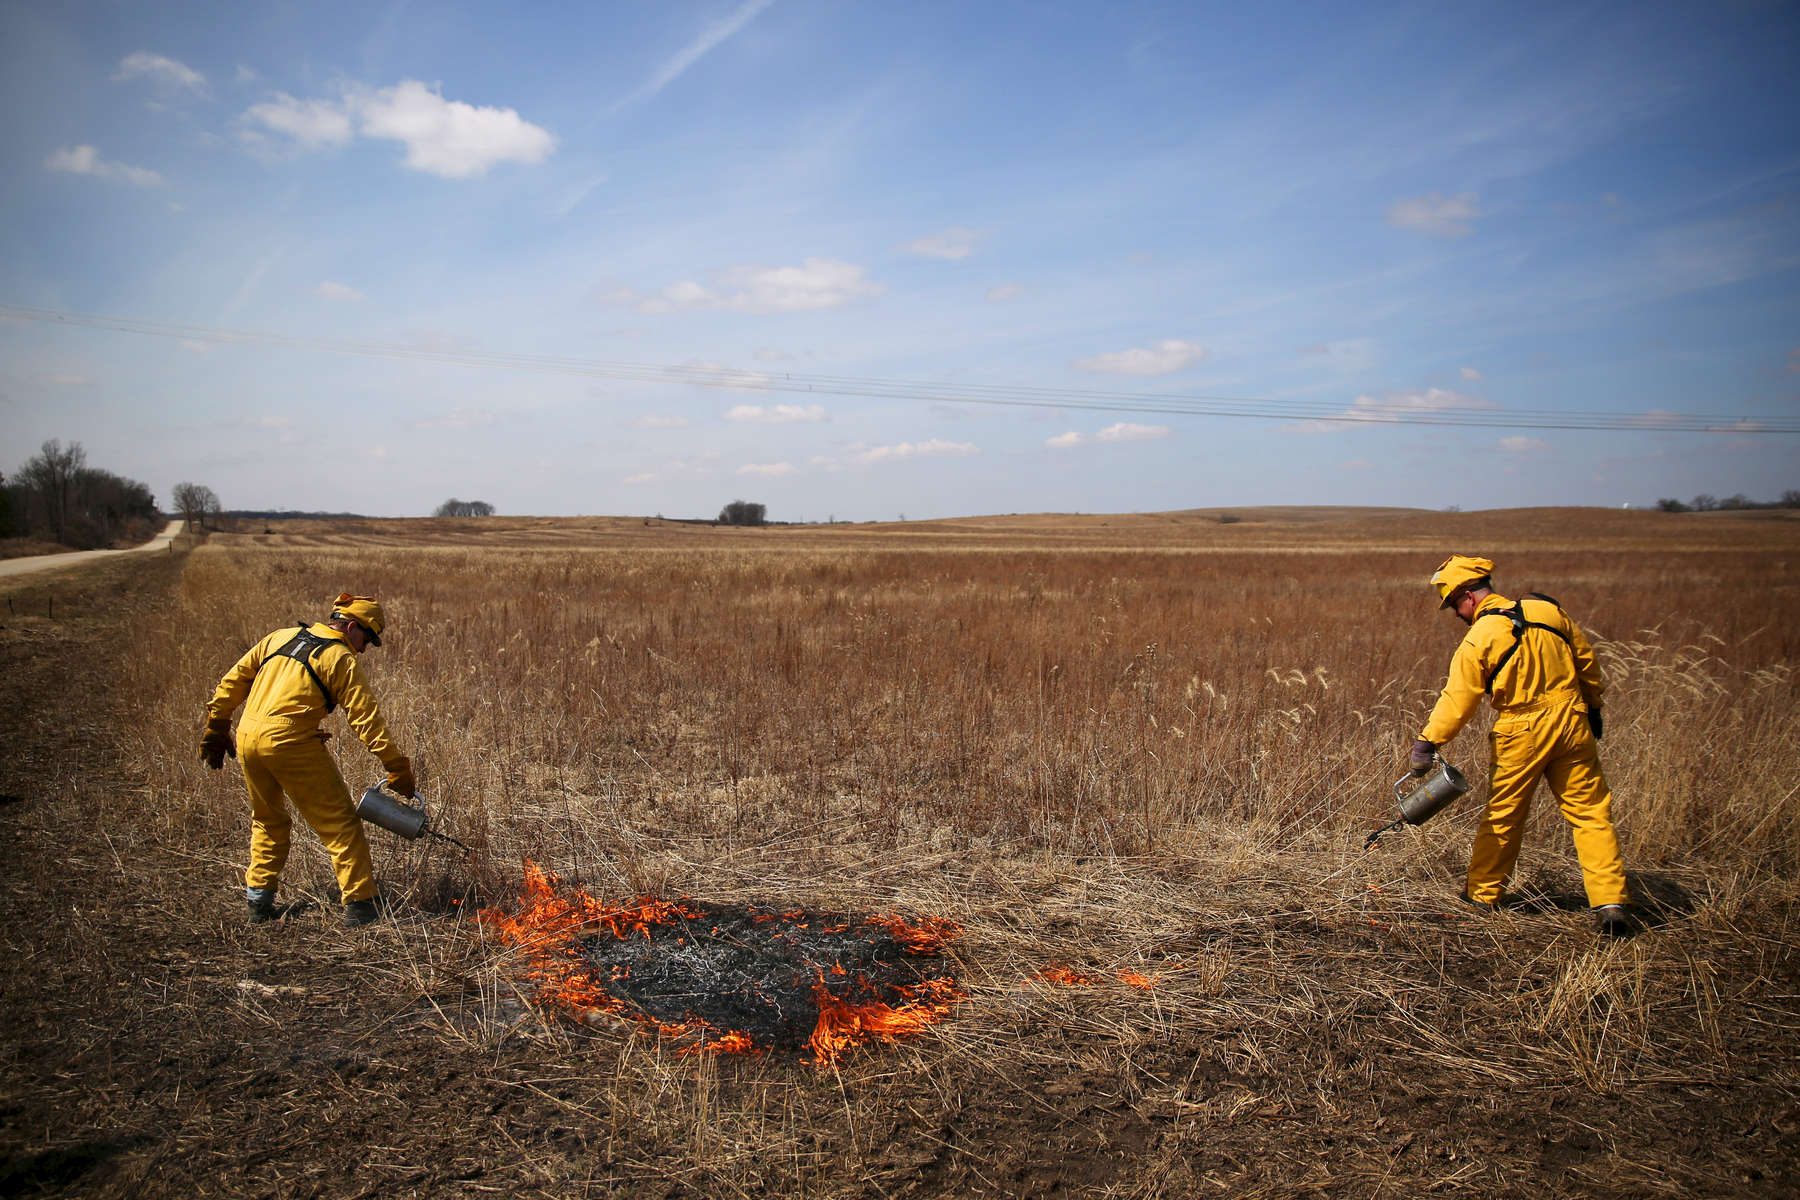 Volunteers Kirk Hallowell, left, and Dave Lawson use drip torches to ignite a prescribed burn. During each burn, non-native plants are removed, allowing prairie plants more nutrients and room to grow. A prescribed burn is a crucial component in prairie restoration.